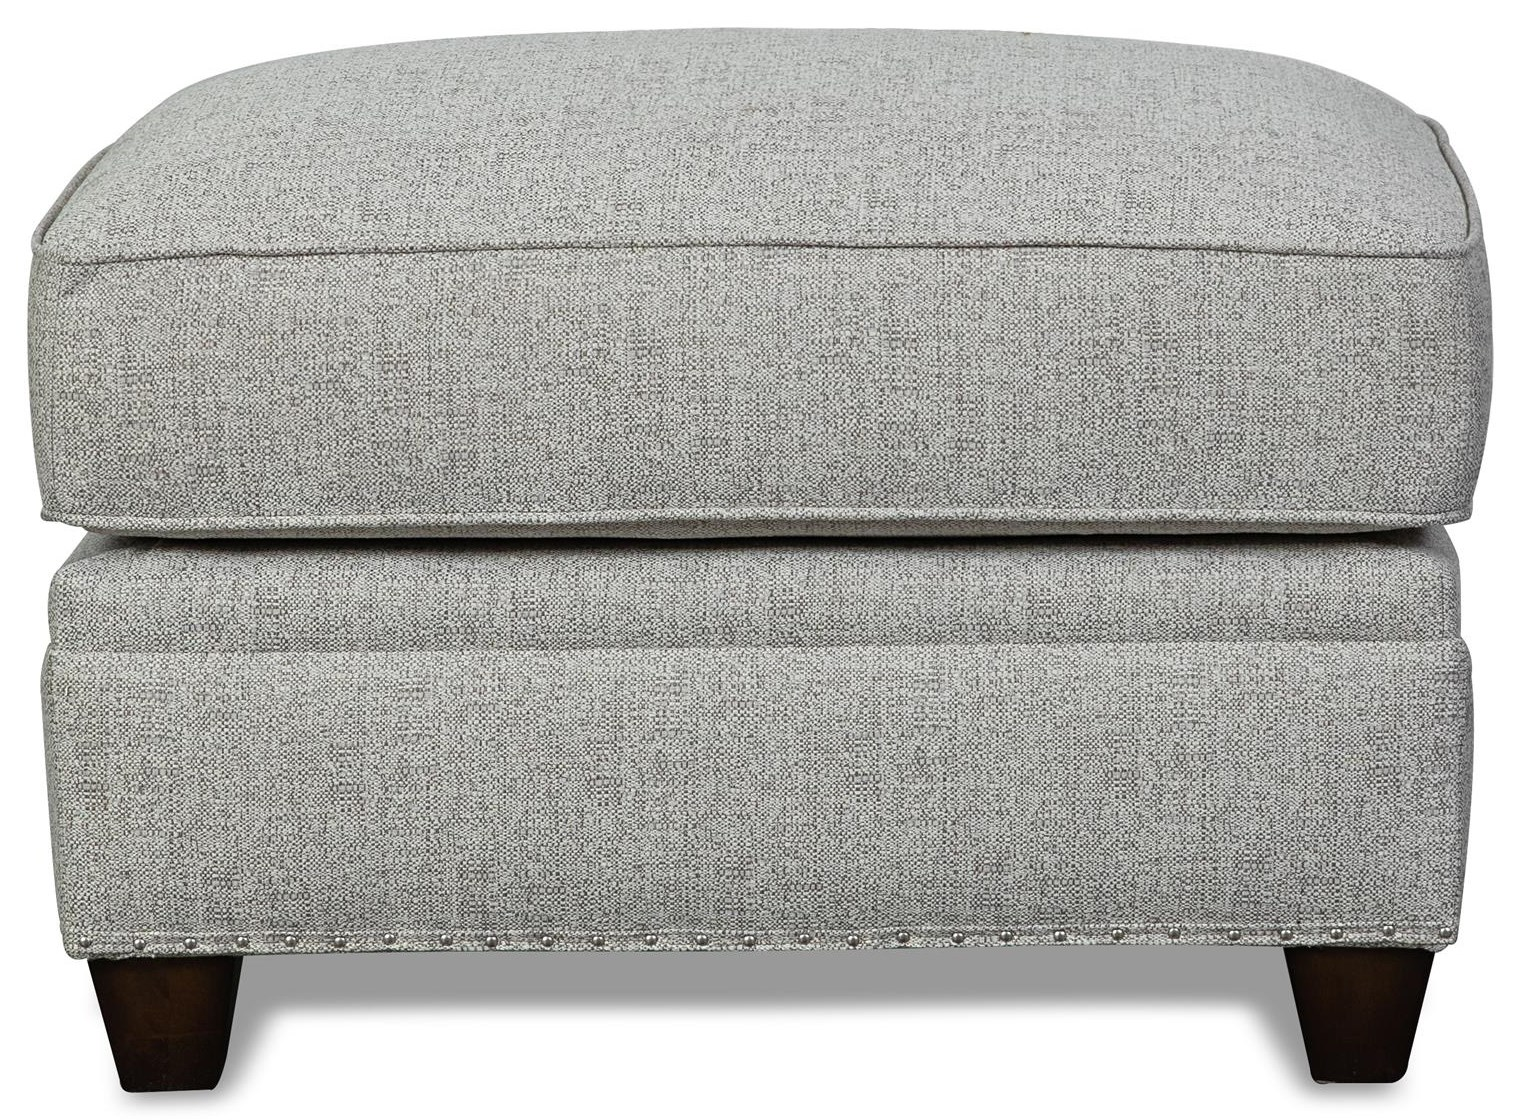 Beaumont Beaumont Ottoman by Aria Designs at Morris Home